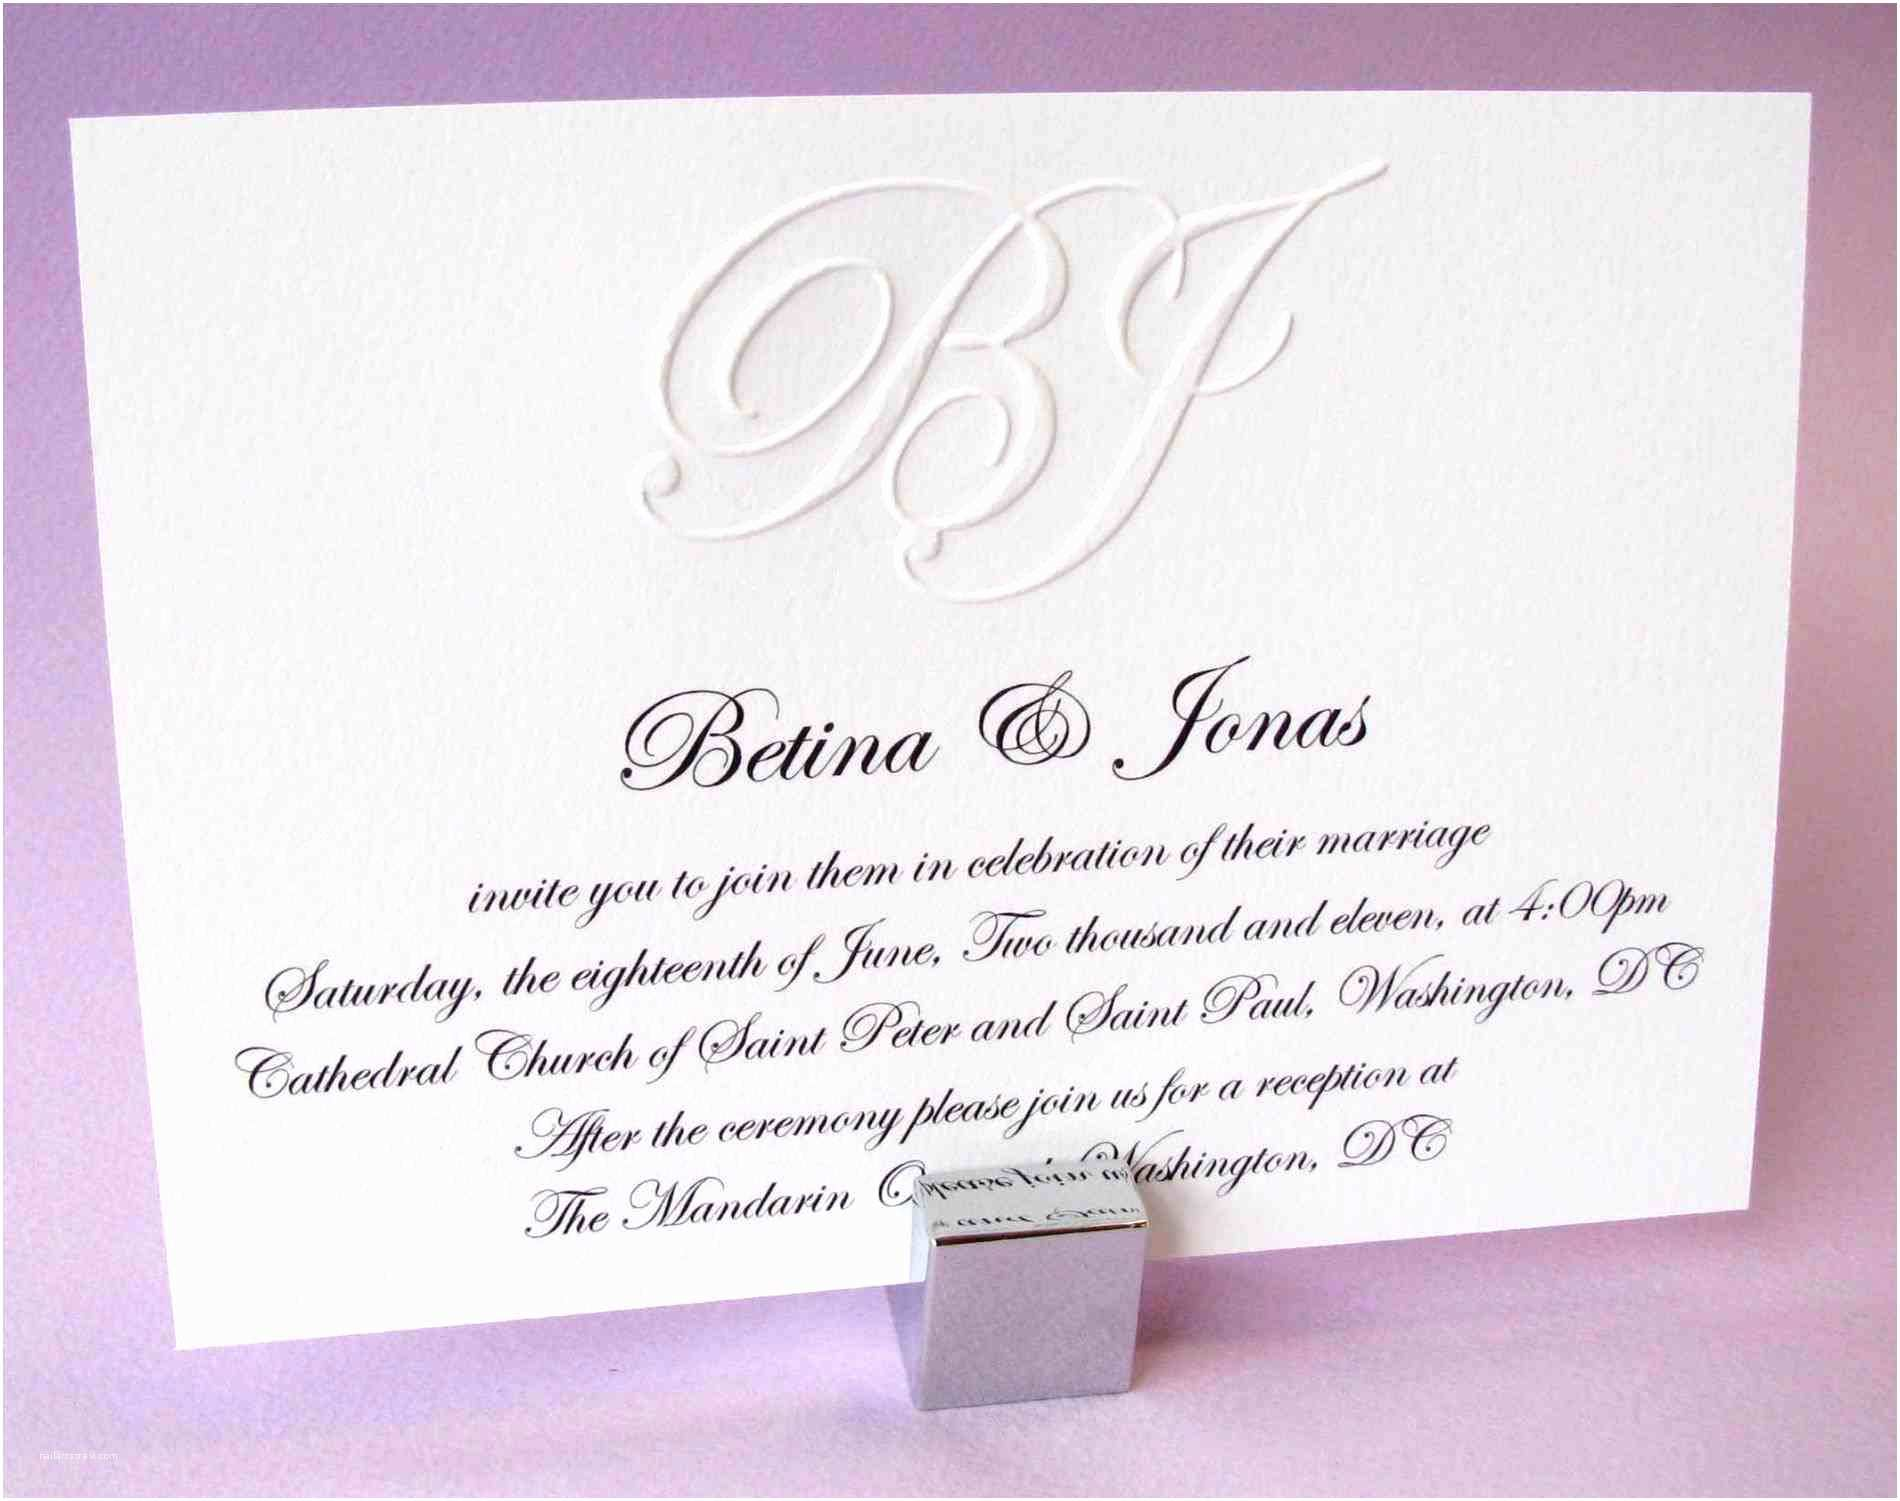 Wedding Invitation Sample Wording Elegant Wedding Invitation Samples Siudy